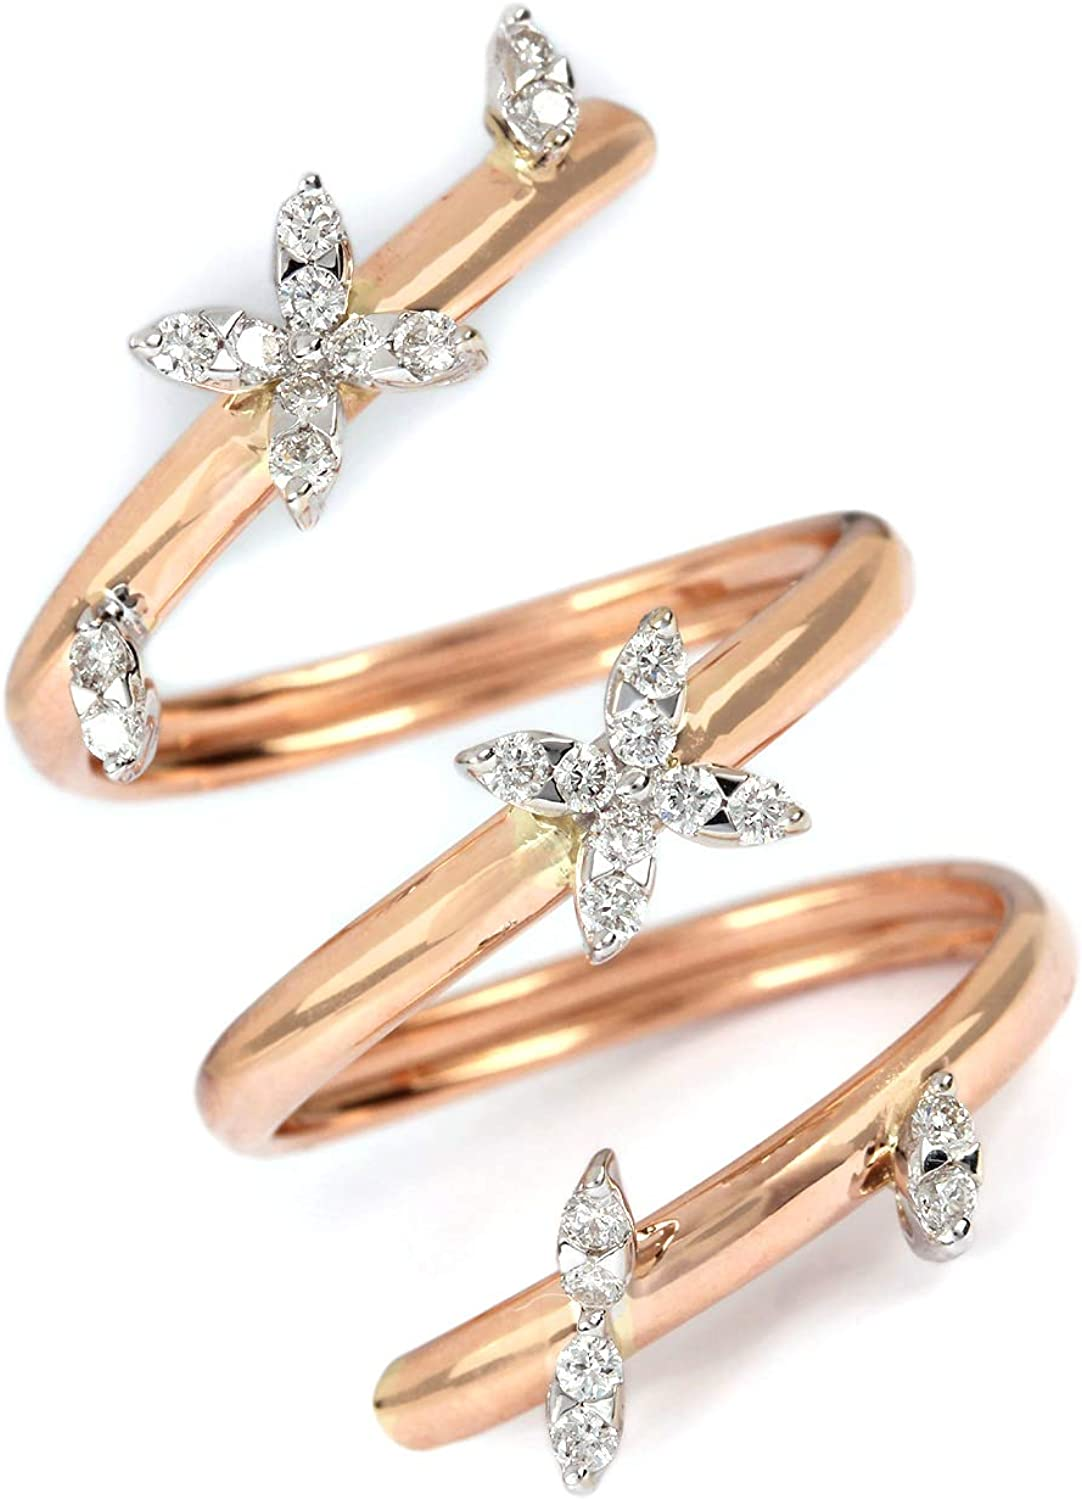 ASHNE JEWELS IGI Certified, 0.33ct Natural Diamond Ring Designer Fine Jewelry Made in 18K Solid Rose Gold For Women and Girls